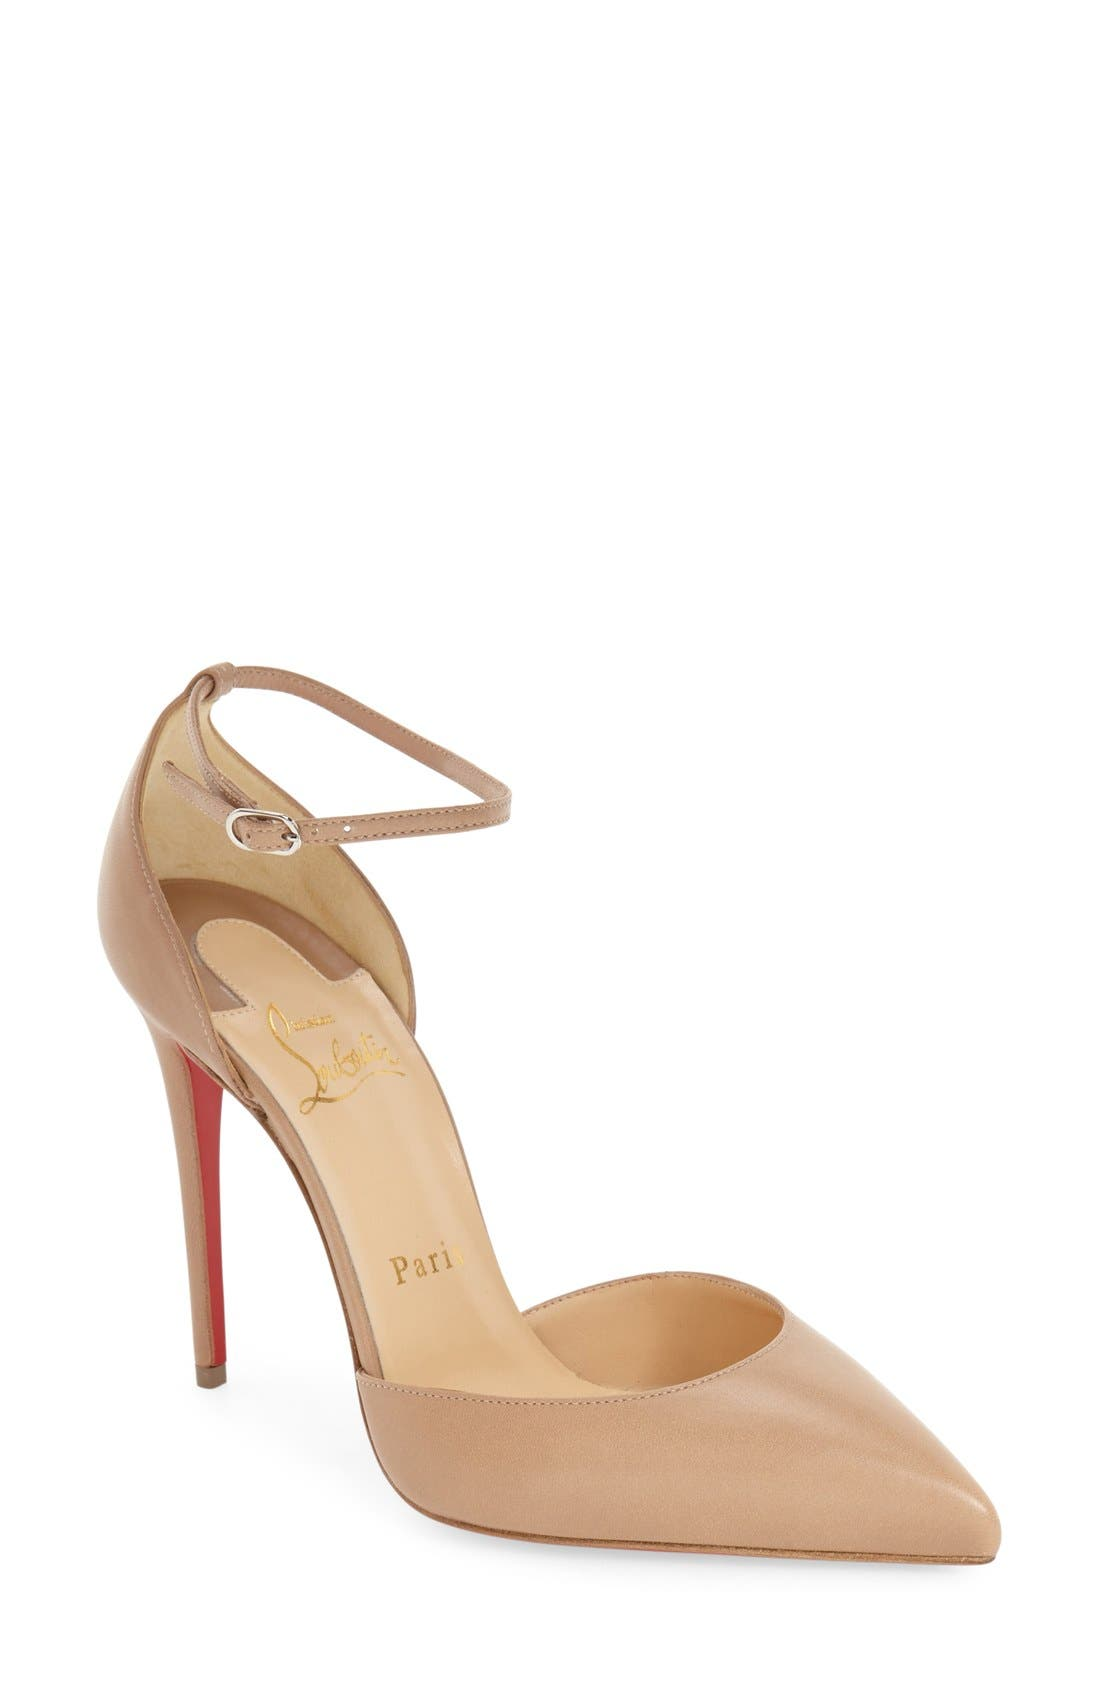 Alternate Image 1 Selected - Christian Louboutin Uptown Ankle Strap Pointy Toe Pump